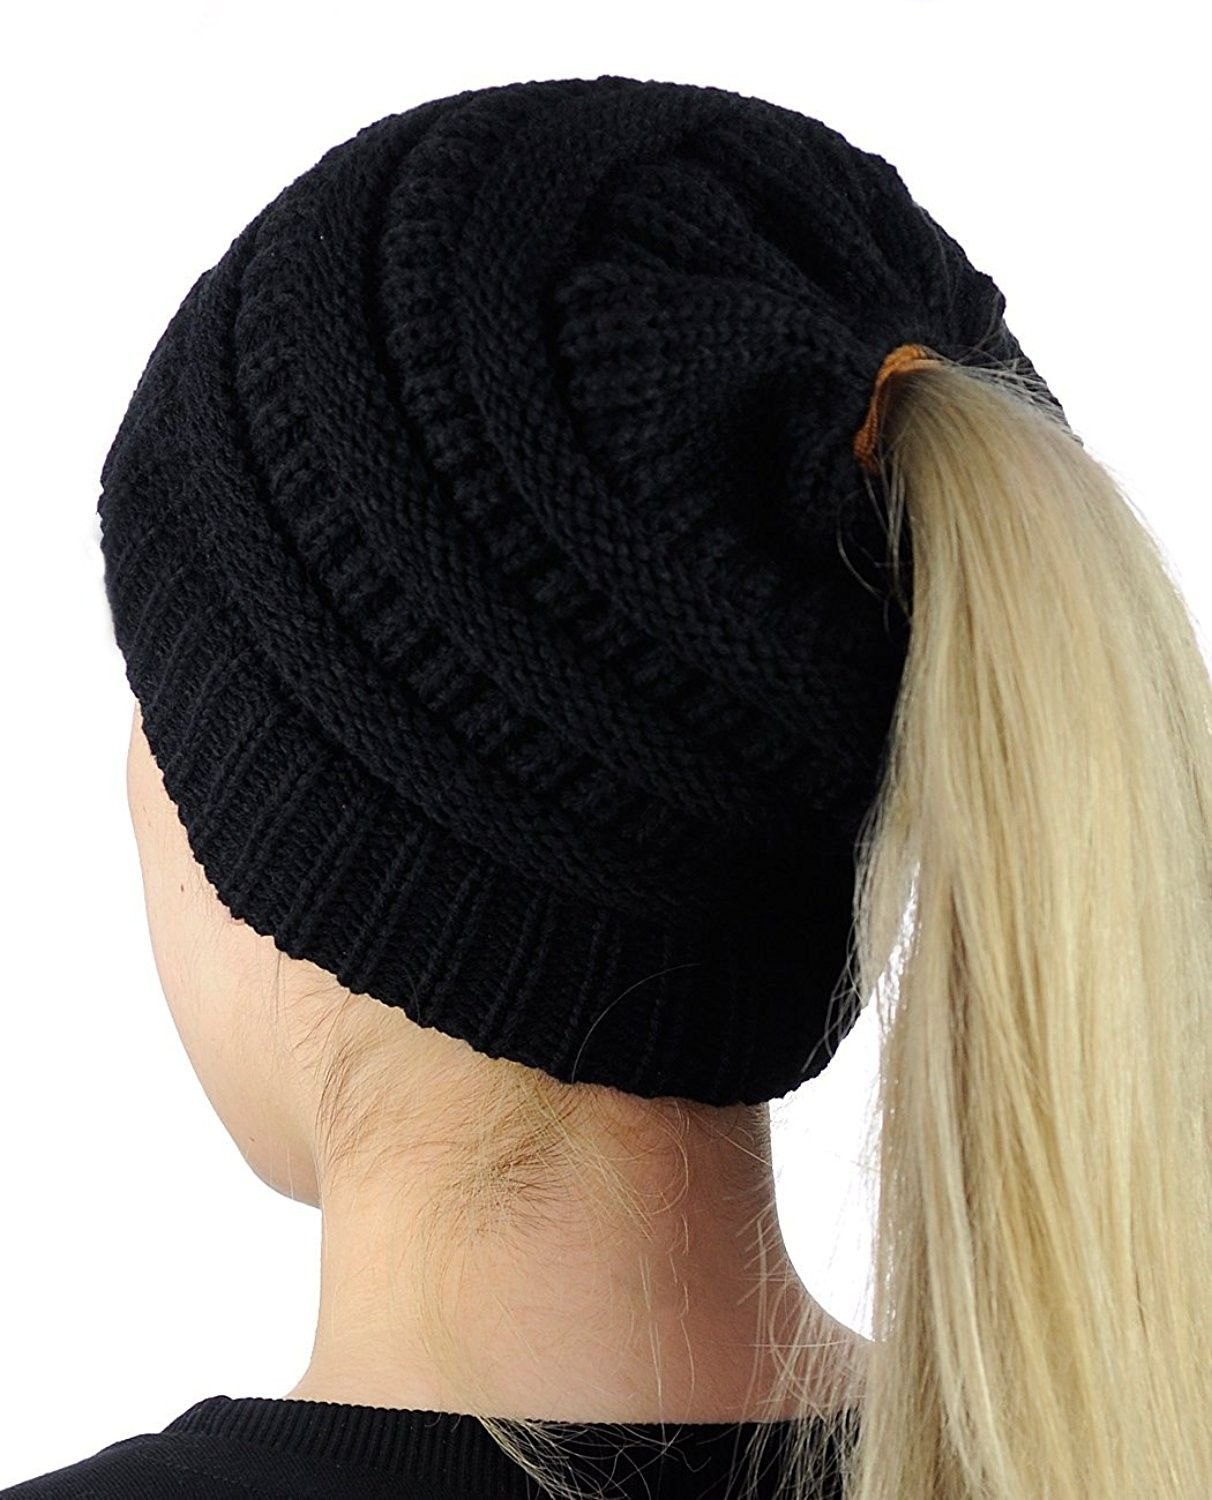 BeanieTail Womens Ponytail Knit Messy High Bun Beanie Solid Ribbed ... 71560edb4dad